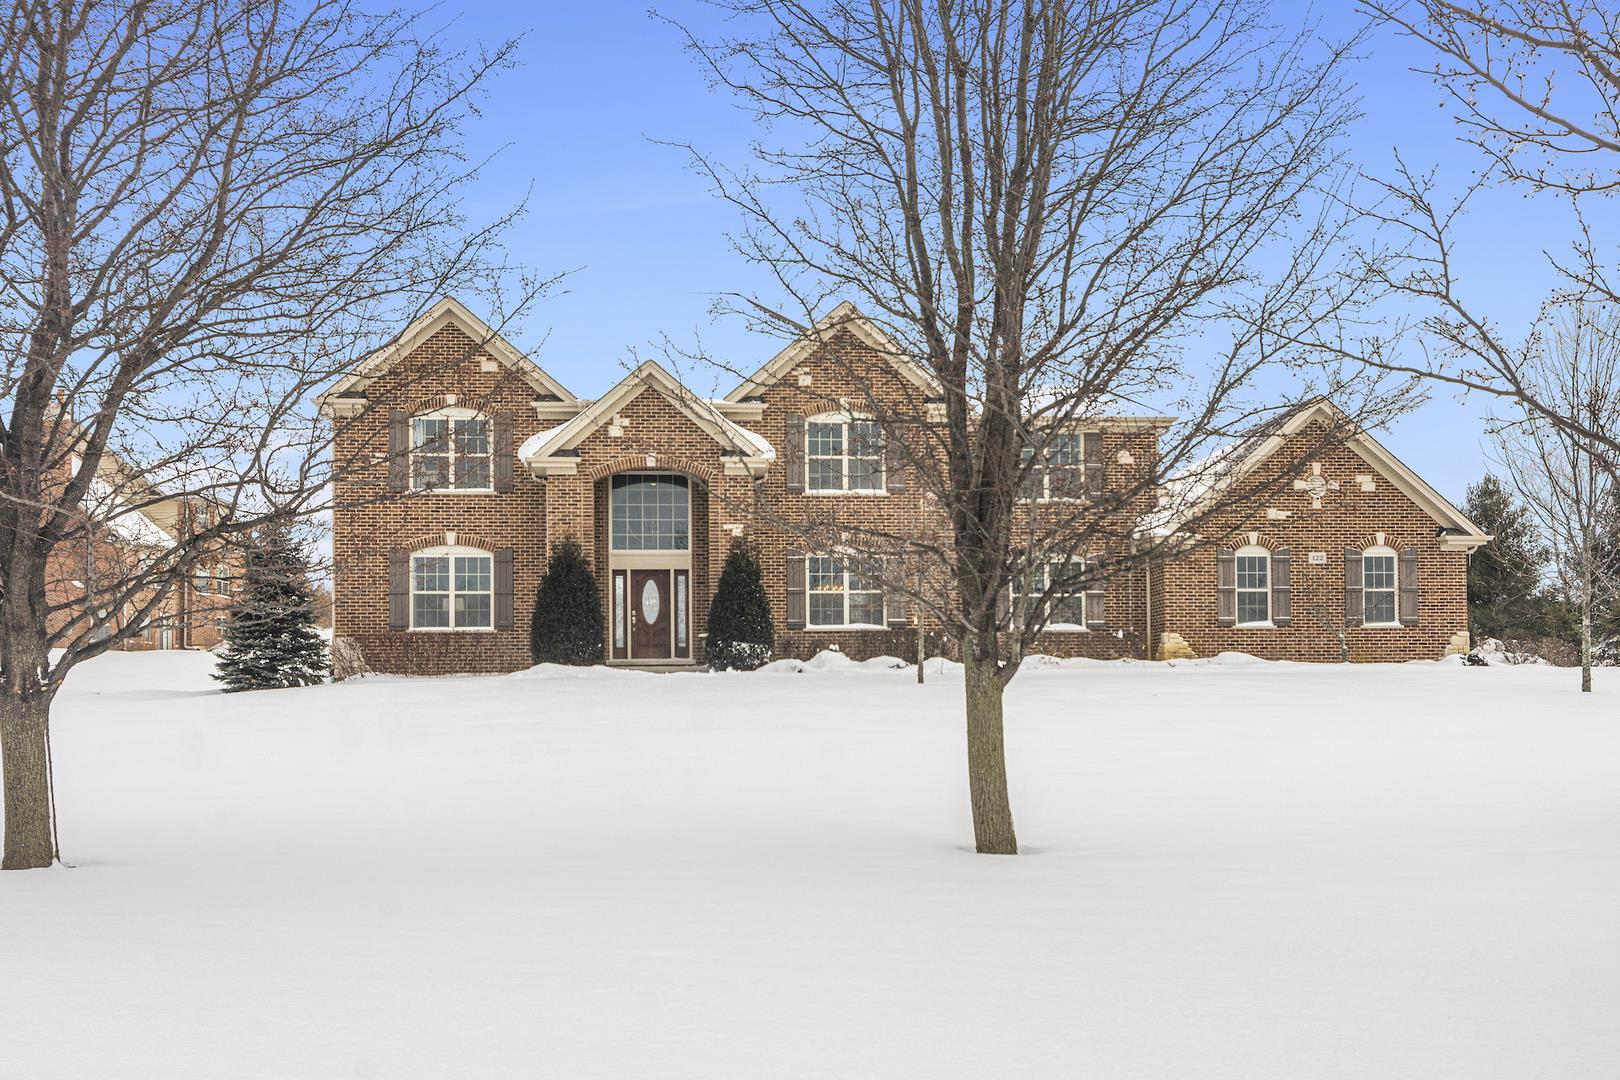 122 Governors Way, Hawthorn Woods, IL 60047 - #: 11011749